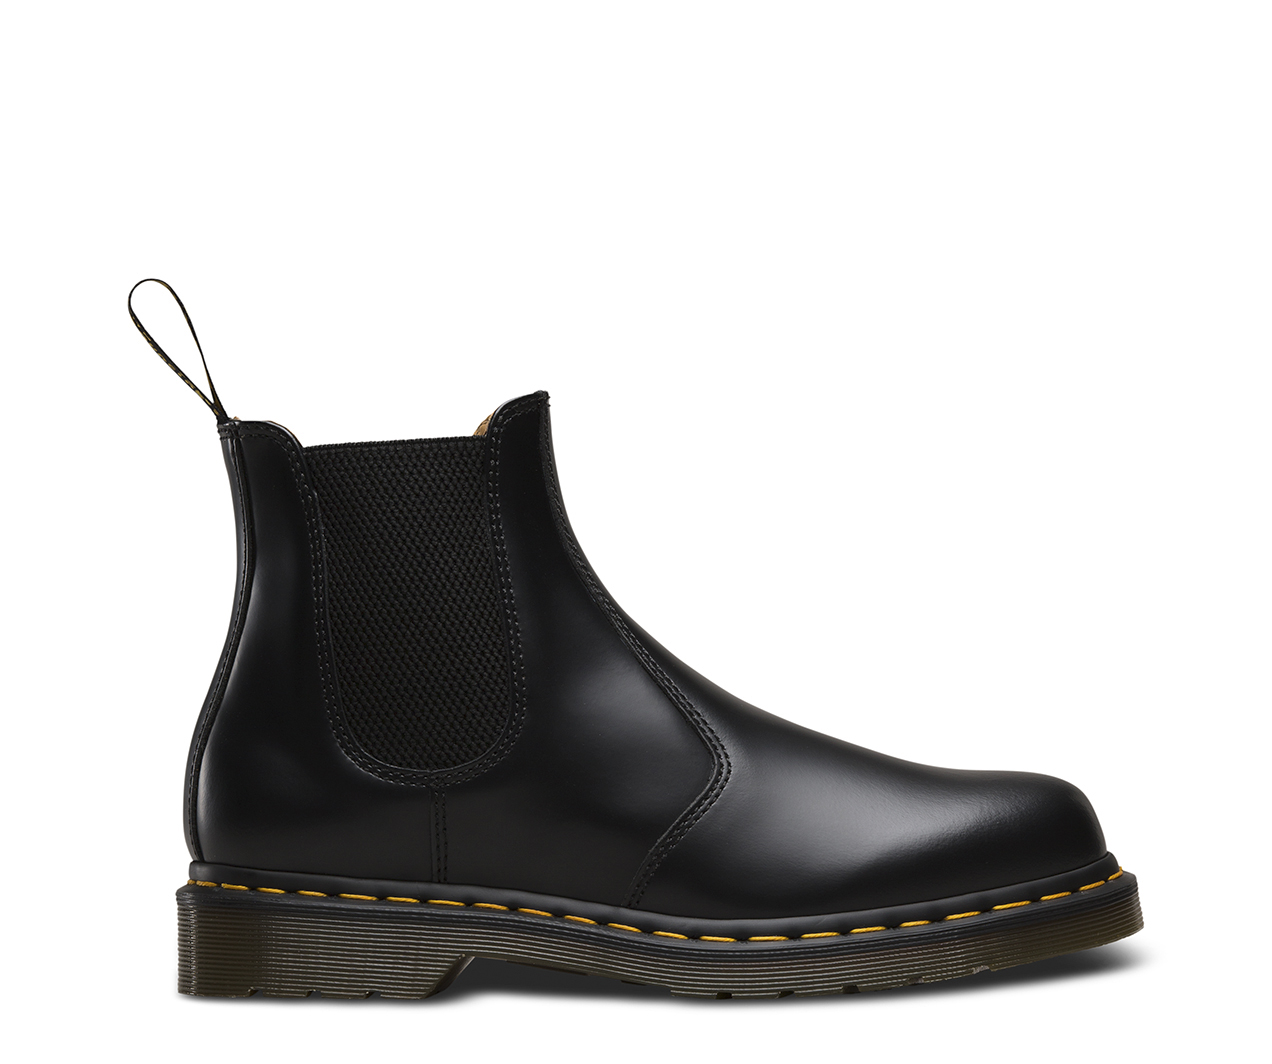 2976 yellow stitch 2976 chelsea boots official dr martens store. Black Bedroom Furniture Sets. Home Design Ideas